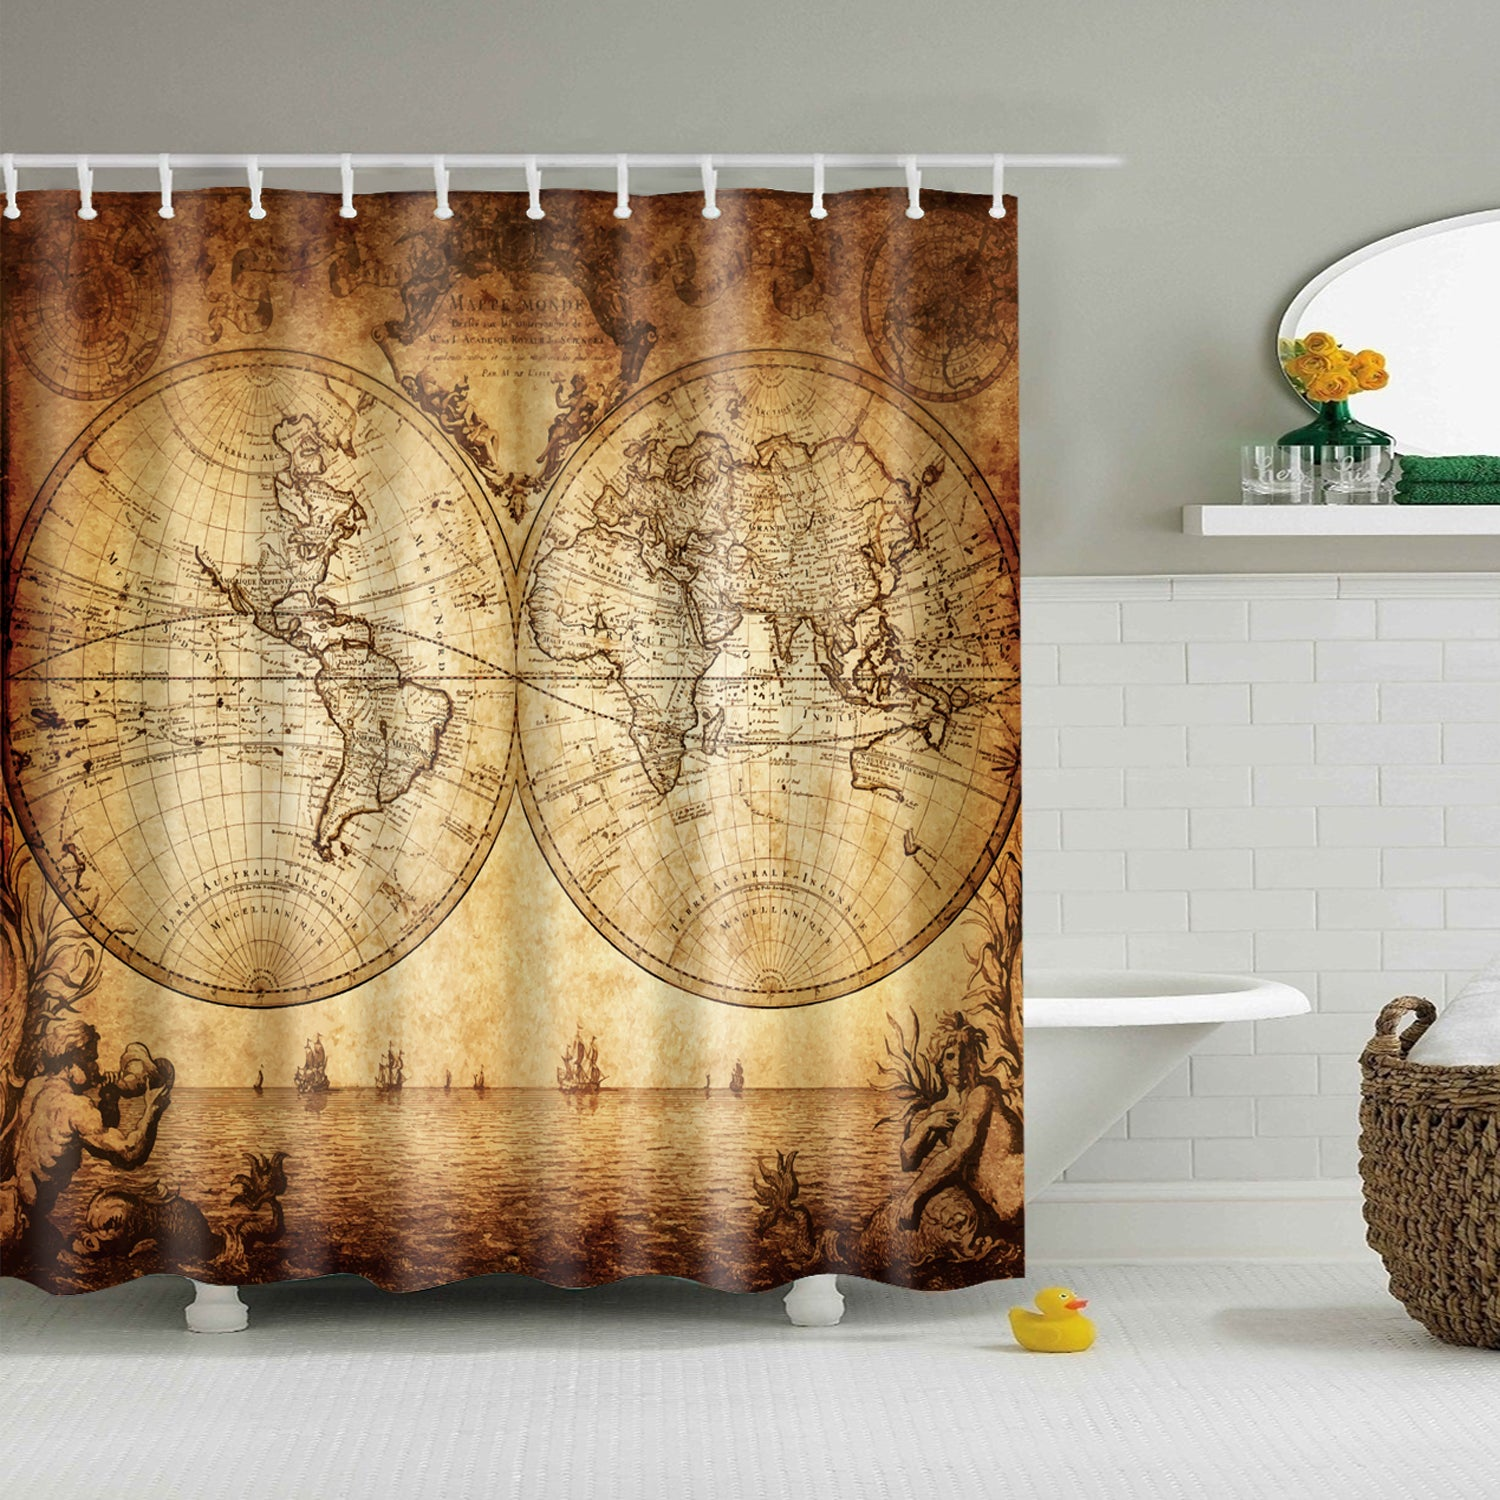 Old Portolan Charts Map Shower Curtain